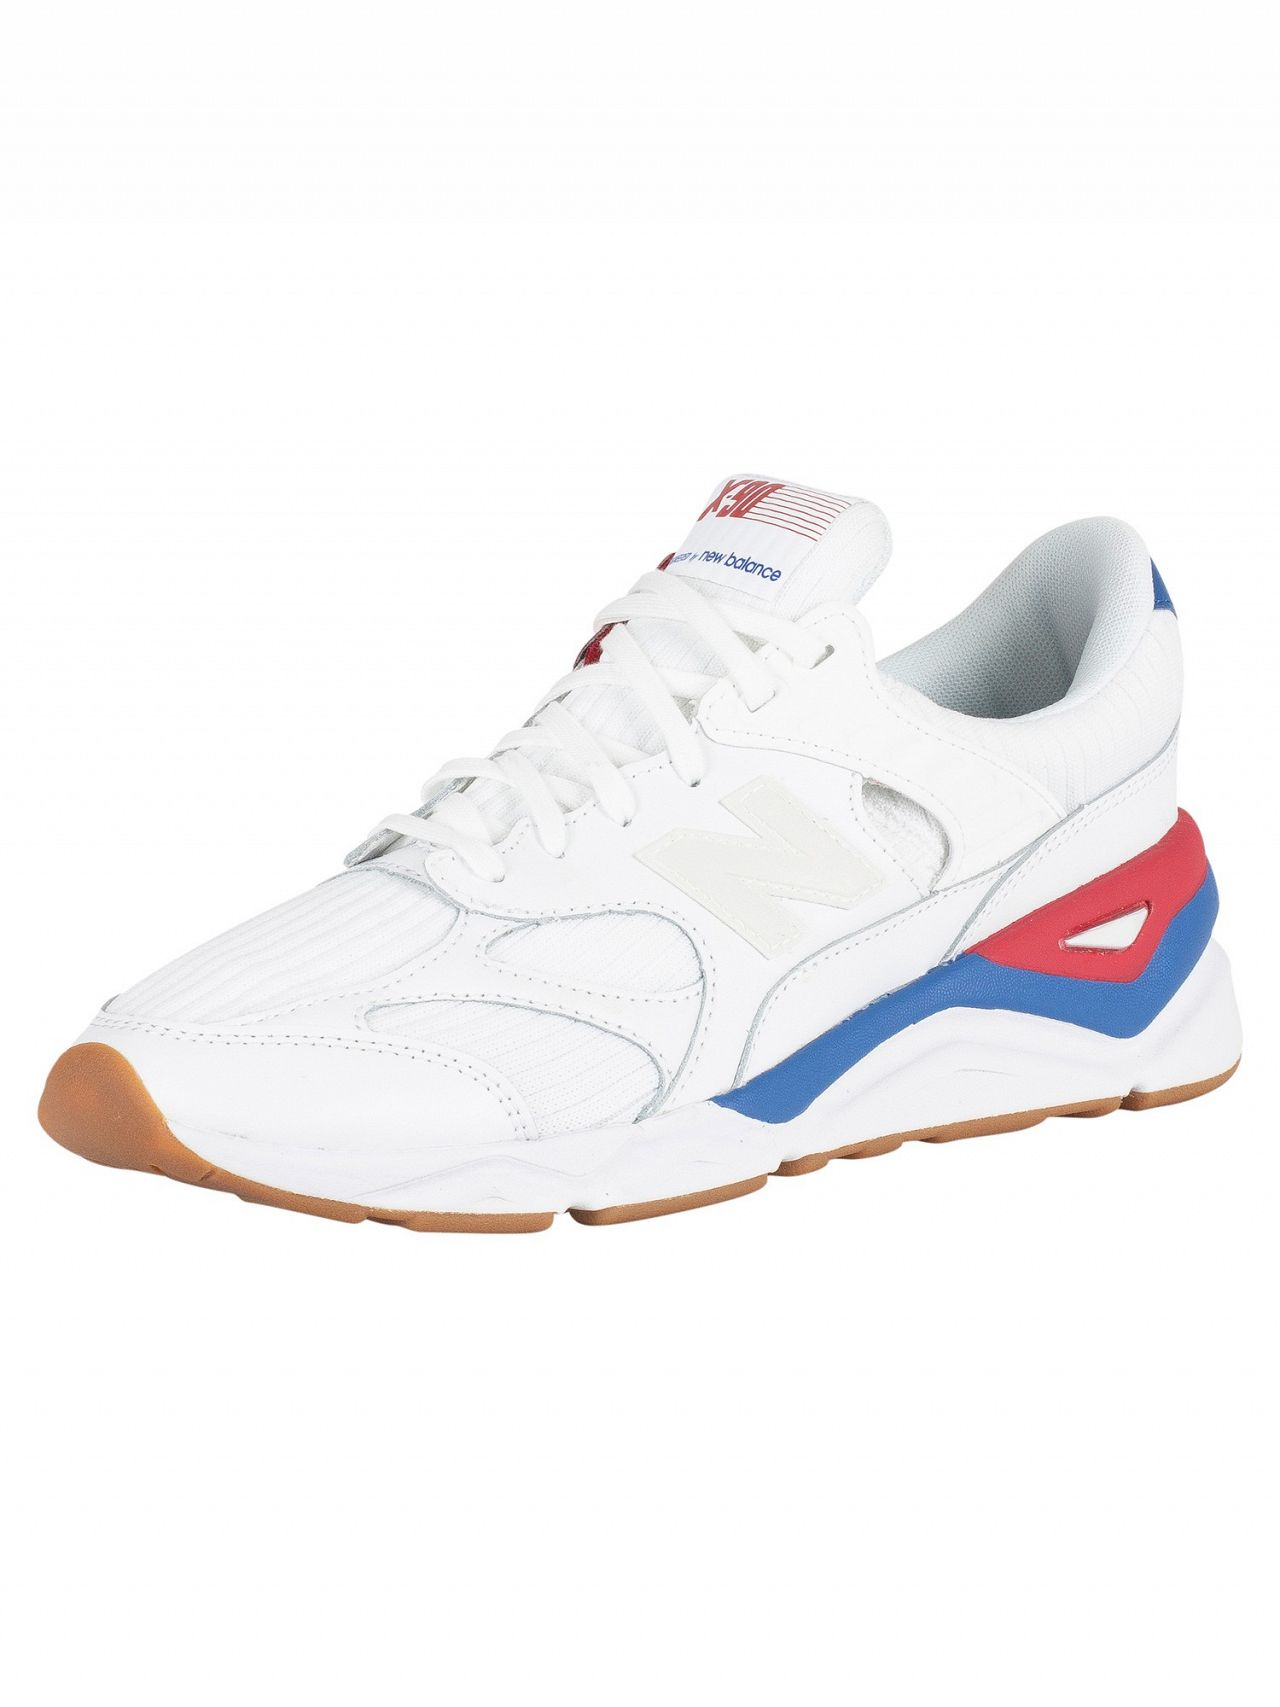 newest c18db f9a77 New Balance White Blue Red X-90 Trainers